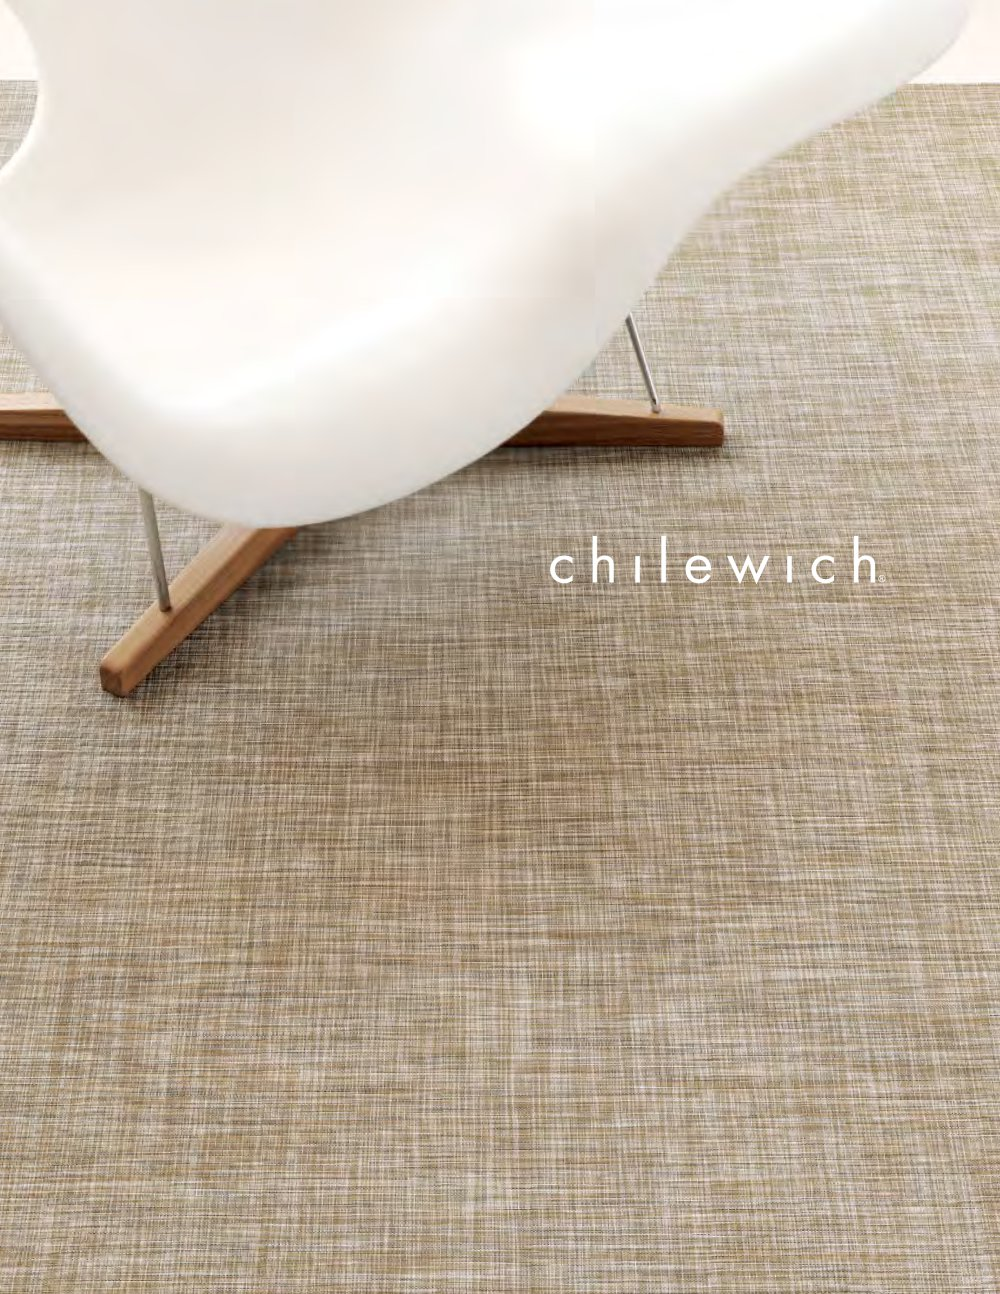 Chilewich contract catalogue 2015 2016 chilewich sultan llc chilewich contract catalogue 2015 2016 1 62 pages dailygadgetfo Images